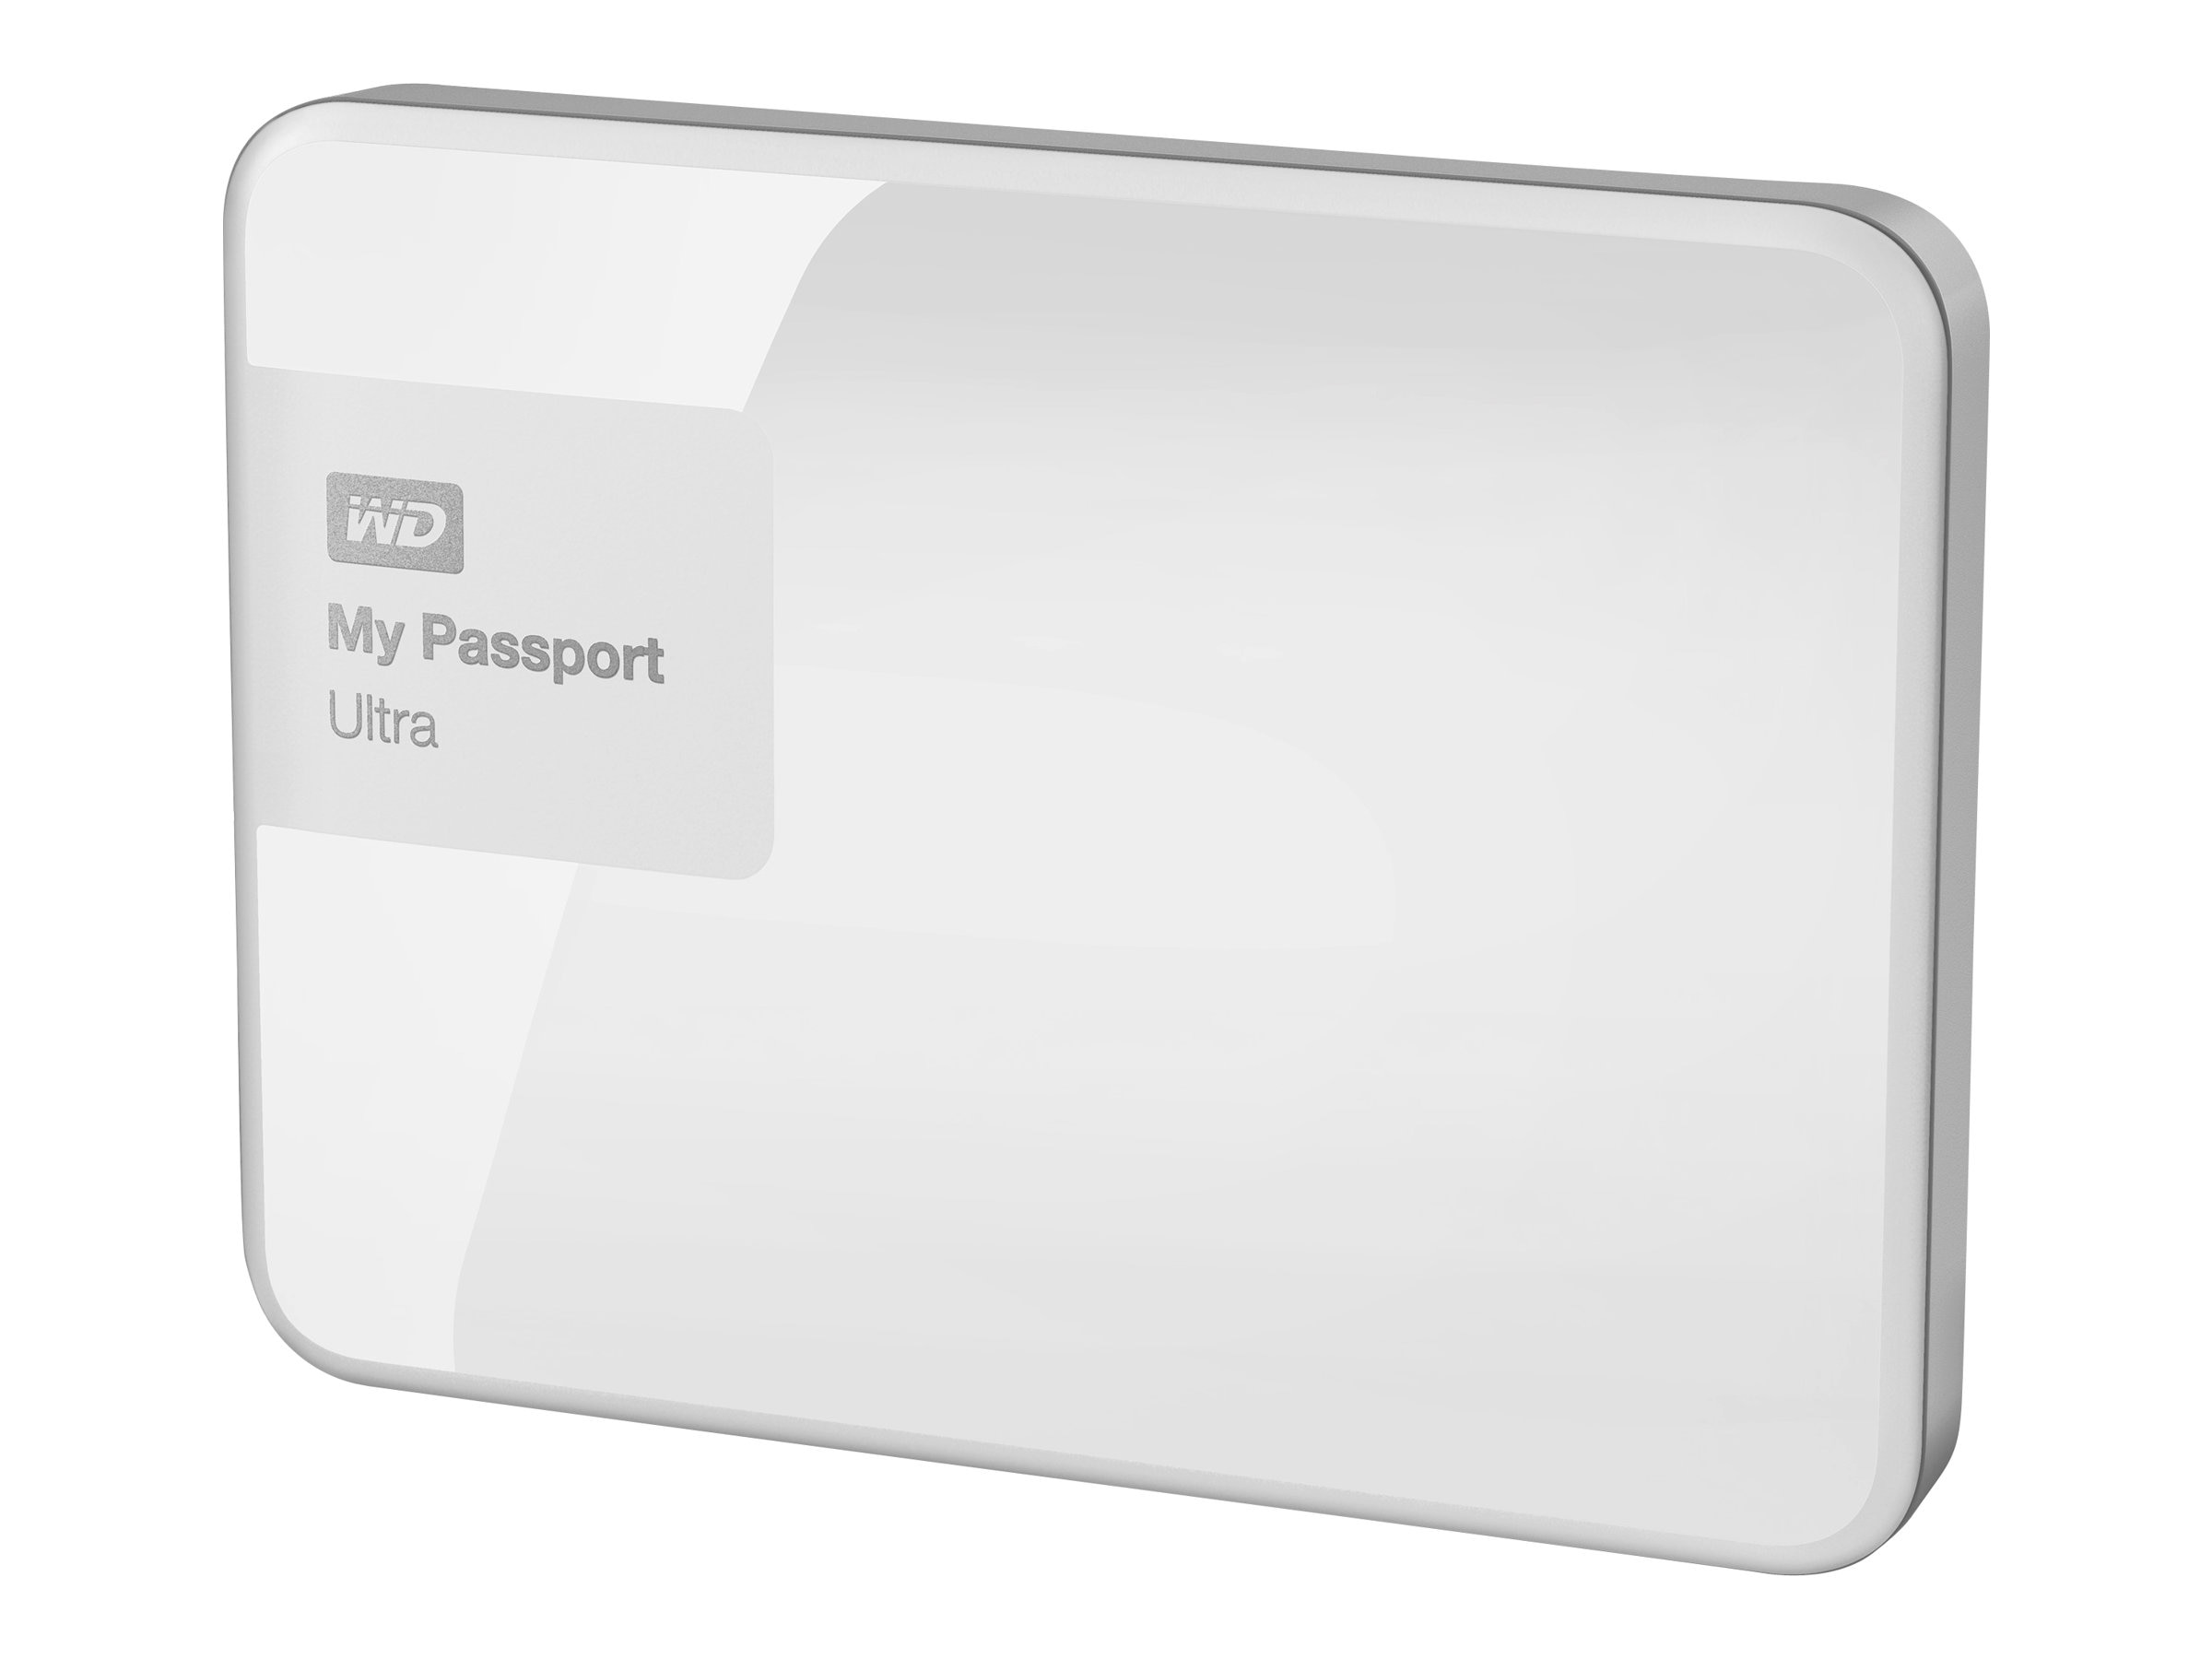 WD 1TB My Passport Ultra Portable Hard Drive - White, WDBGPU0010BWT-NESN, 21089155, Hard Drives - External